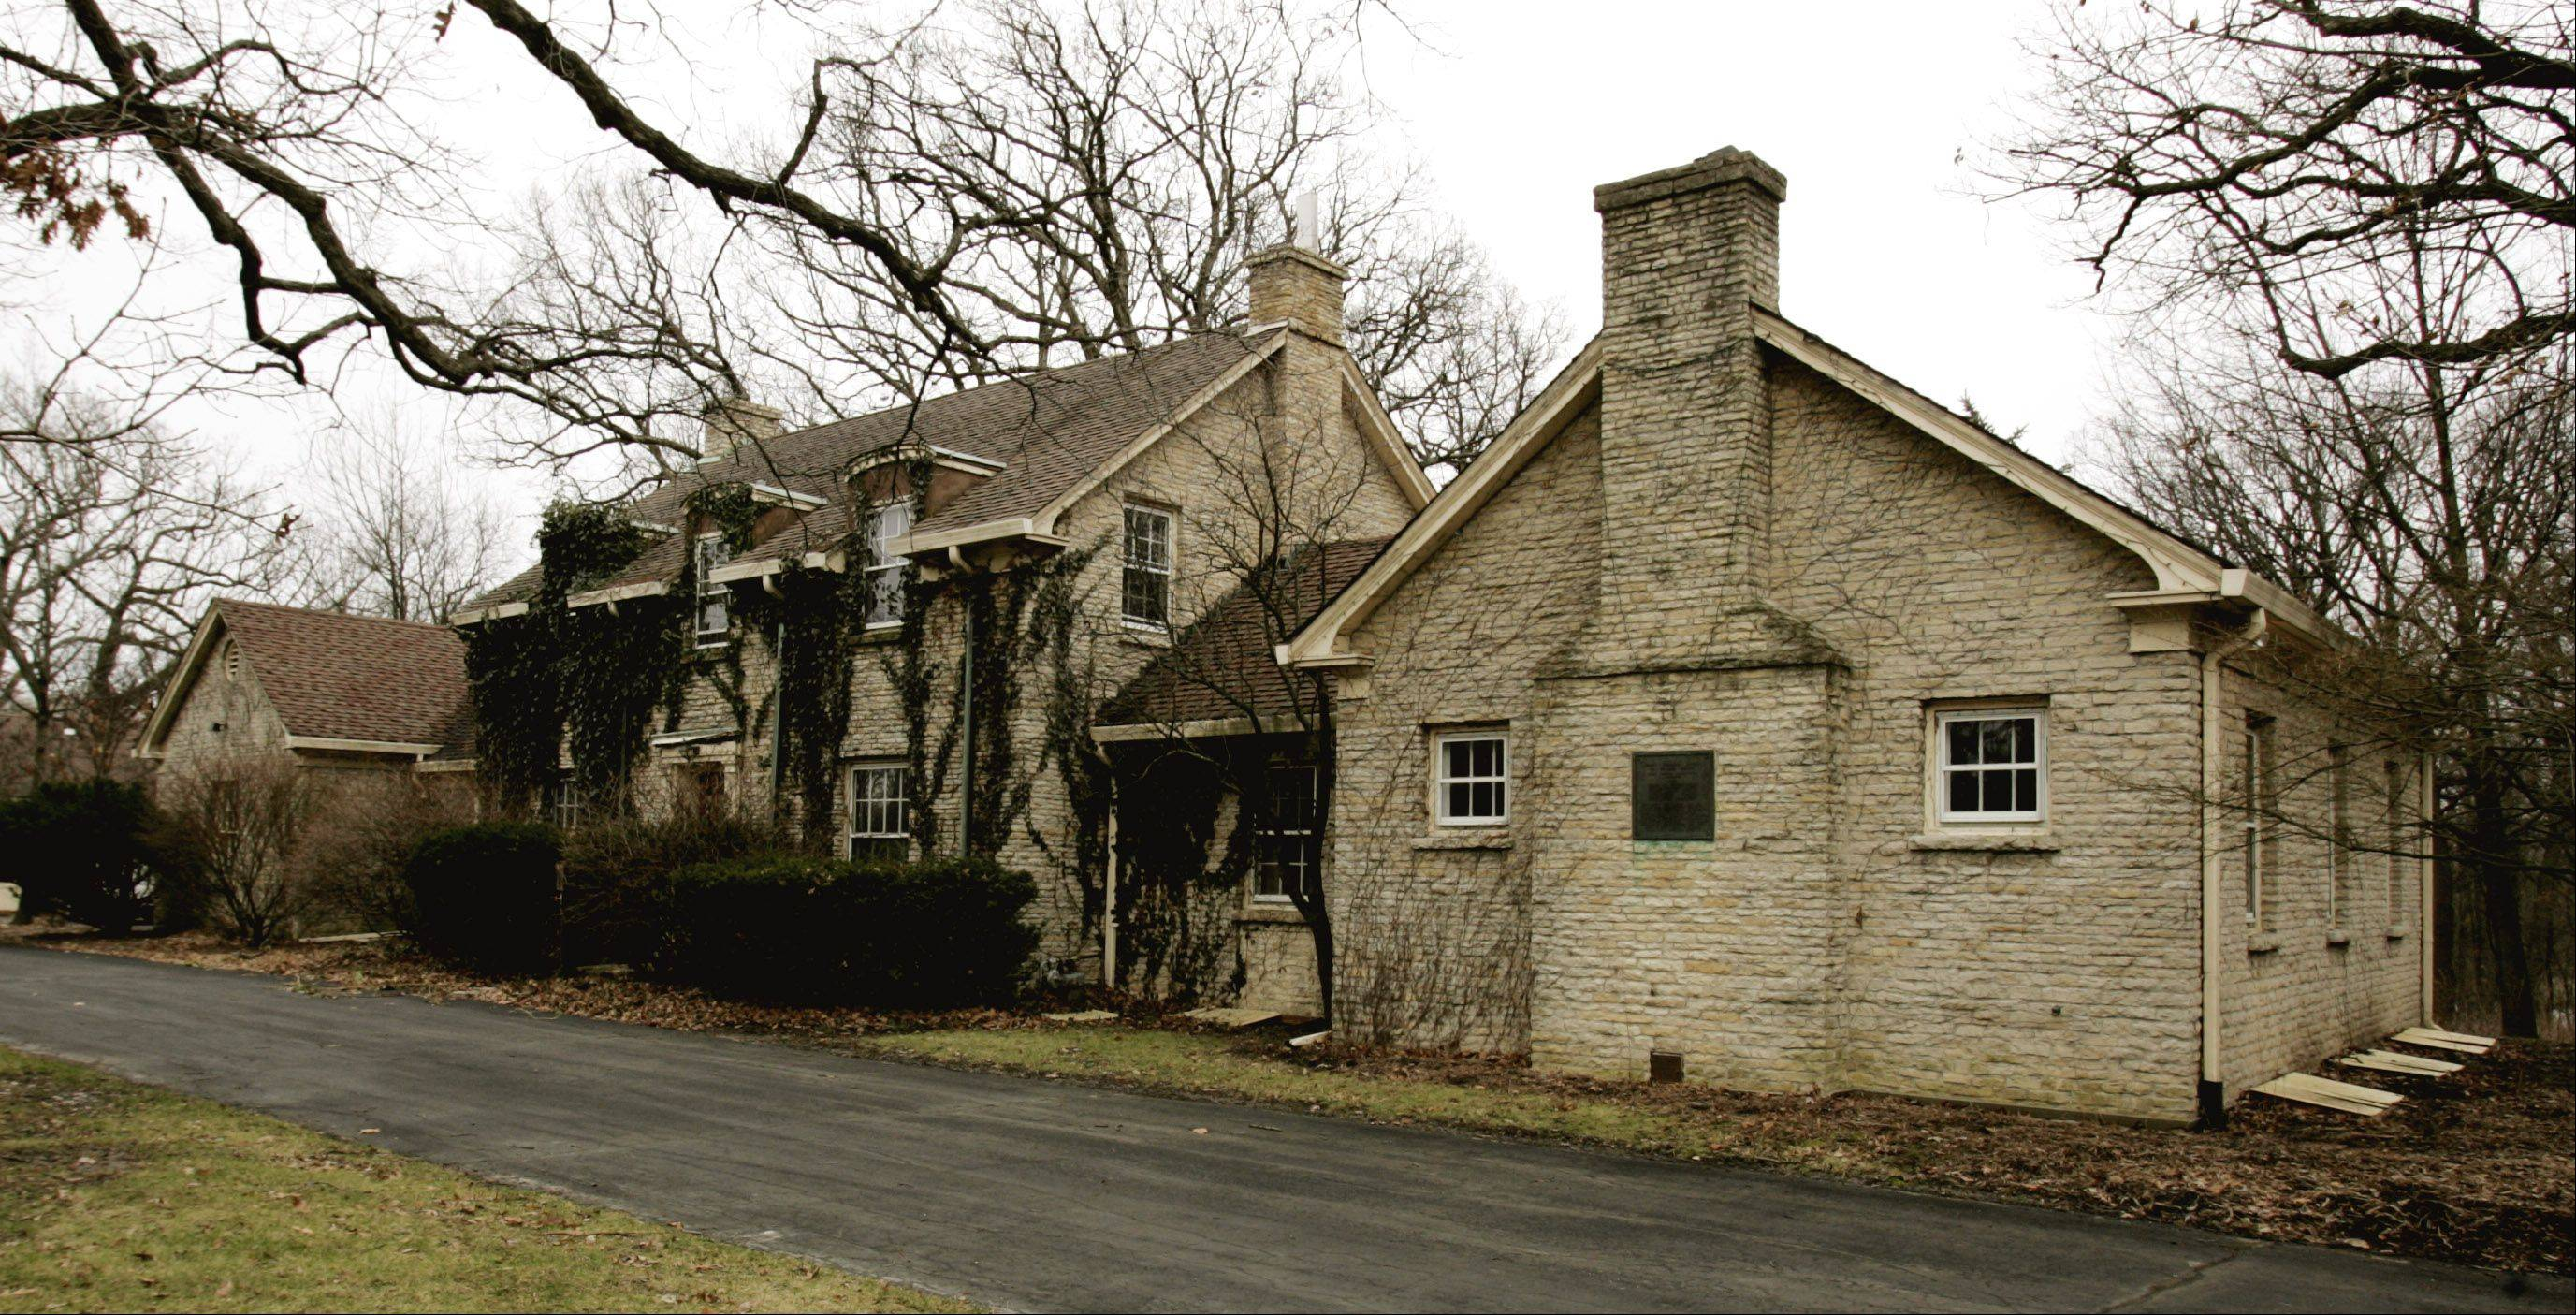 Forest preserve district to discuss future of McKee House